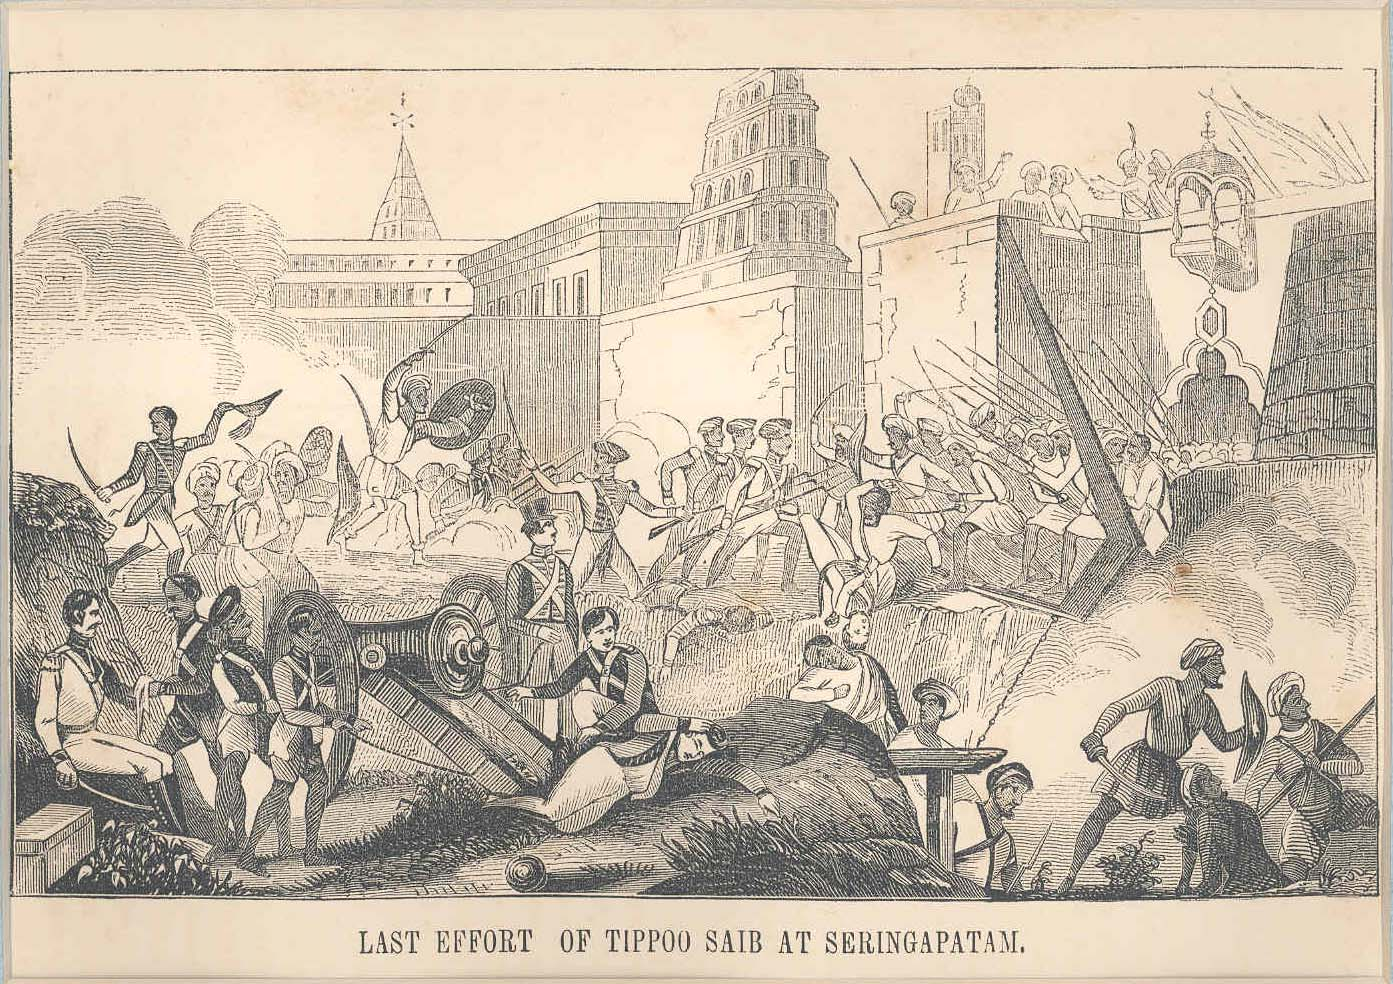 http://www.columbia.edu/itc/mealac/pritchett/00routesdata/1700_1799/tipusultan/lastbattle/engraving1851.jpg